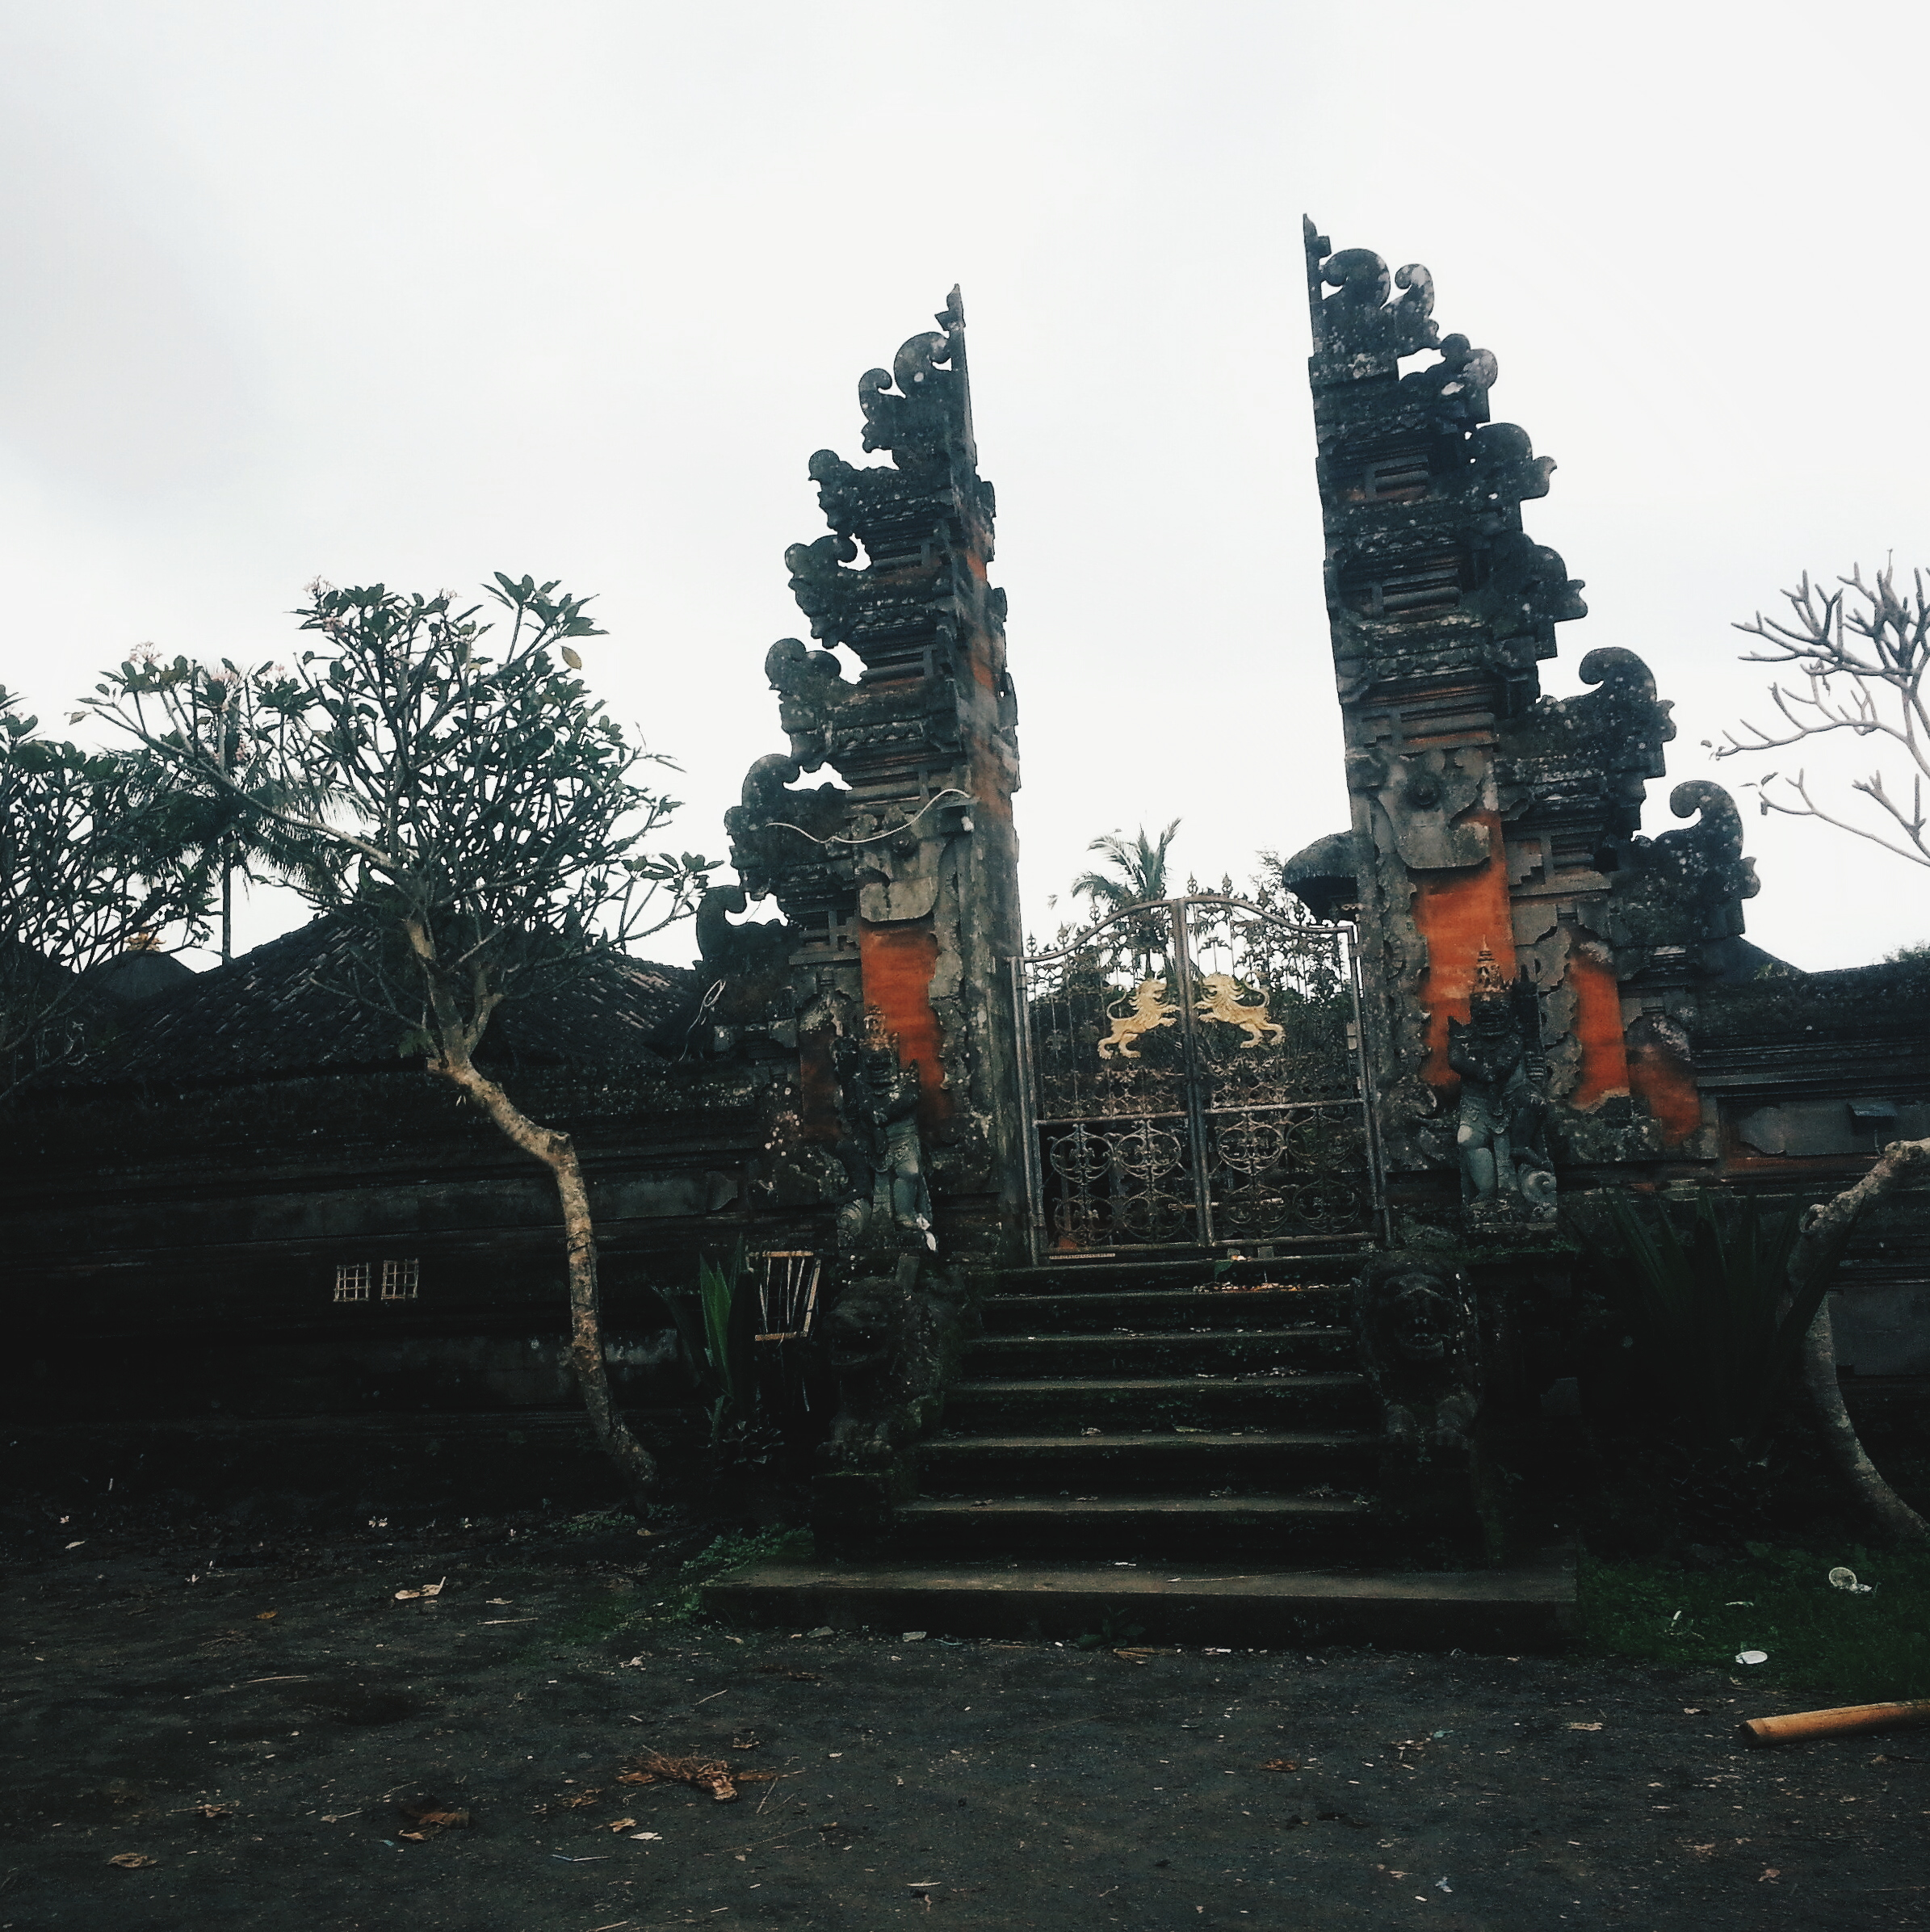 A typical Balinese Hindu temple